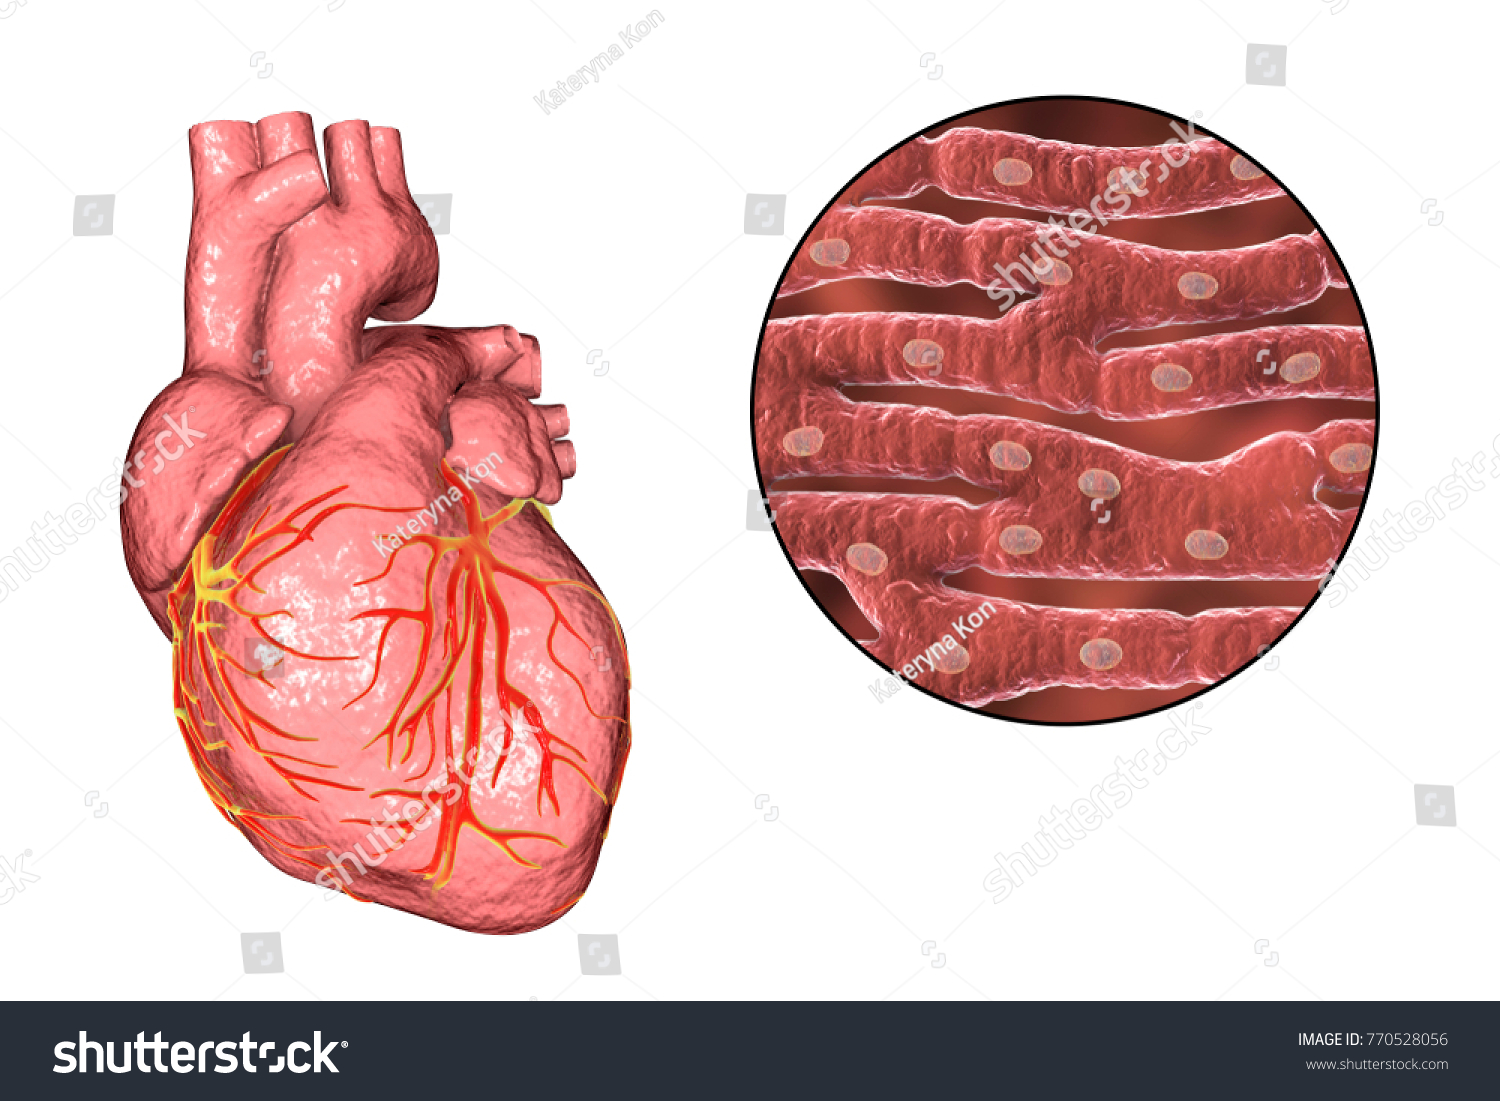 Human Heart Closeup View Cardiac Muscle Stock Illustration Royalty